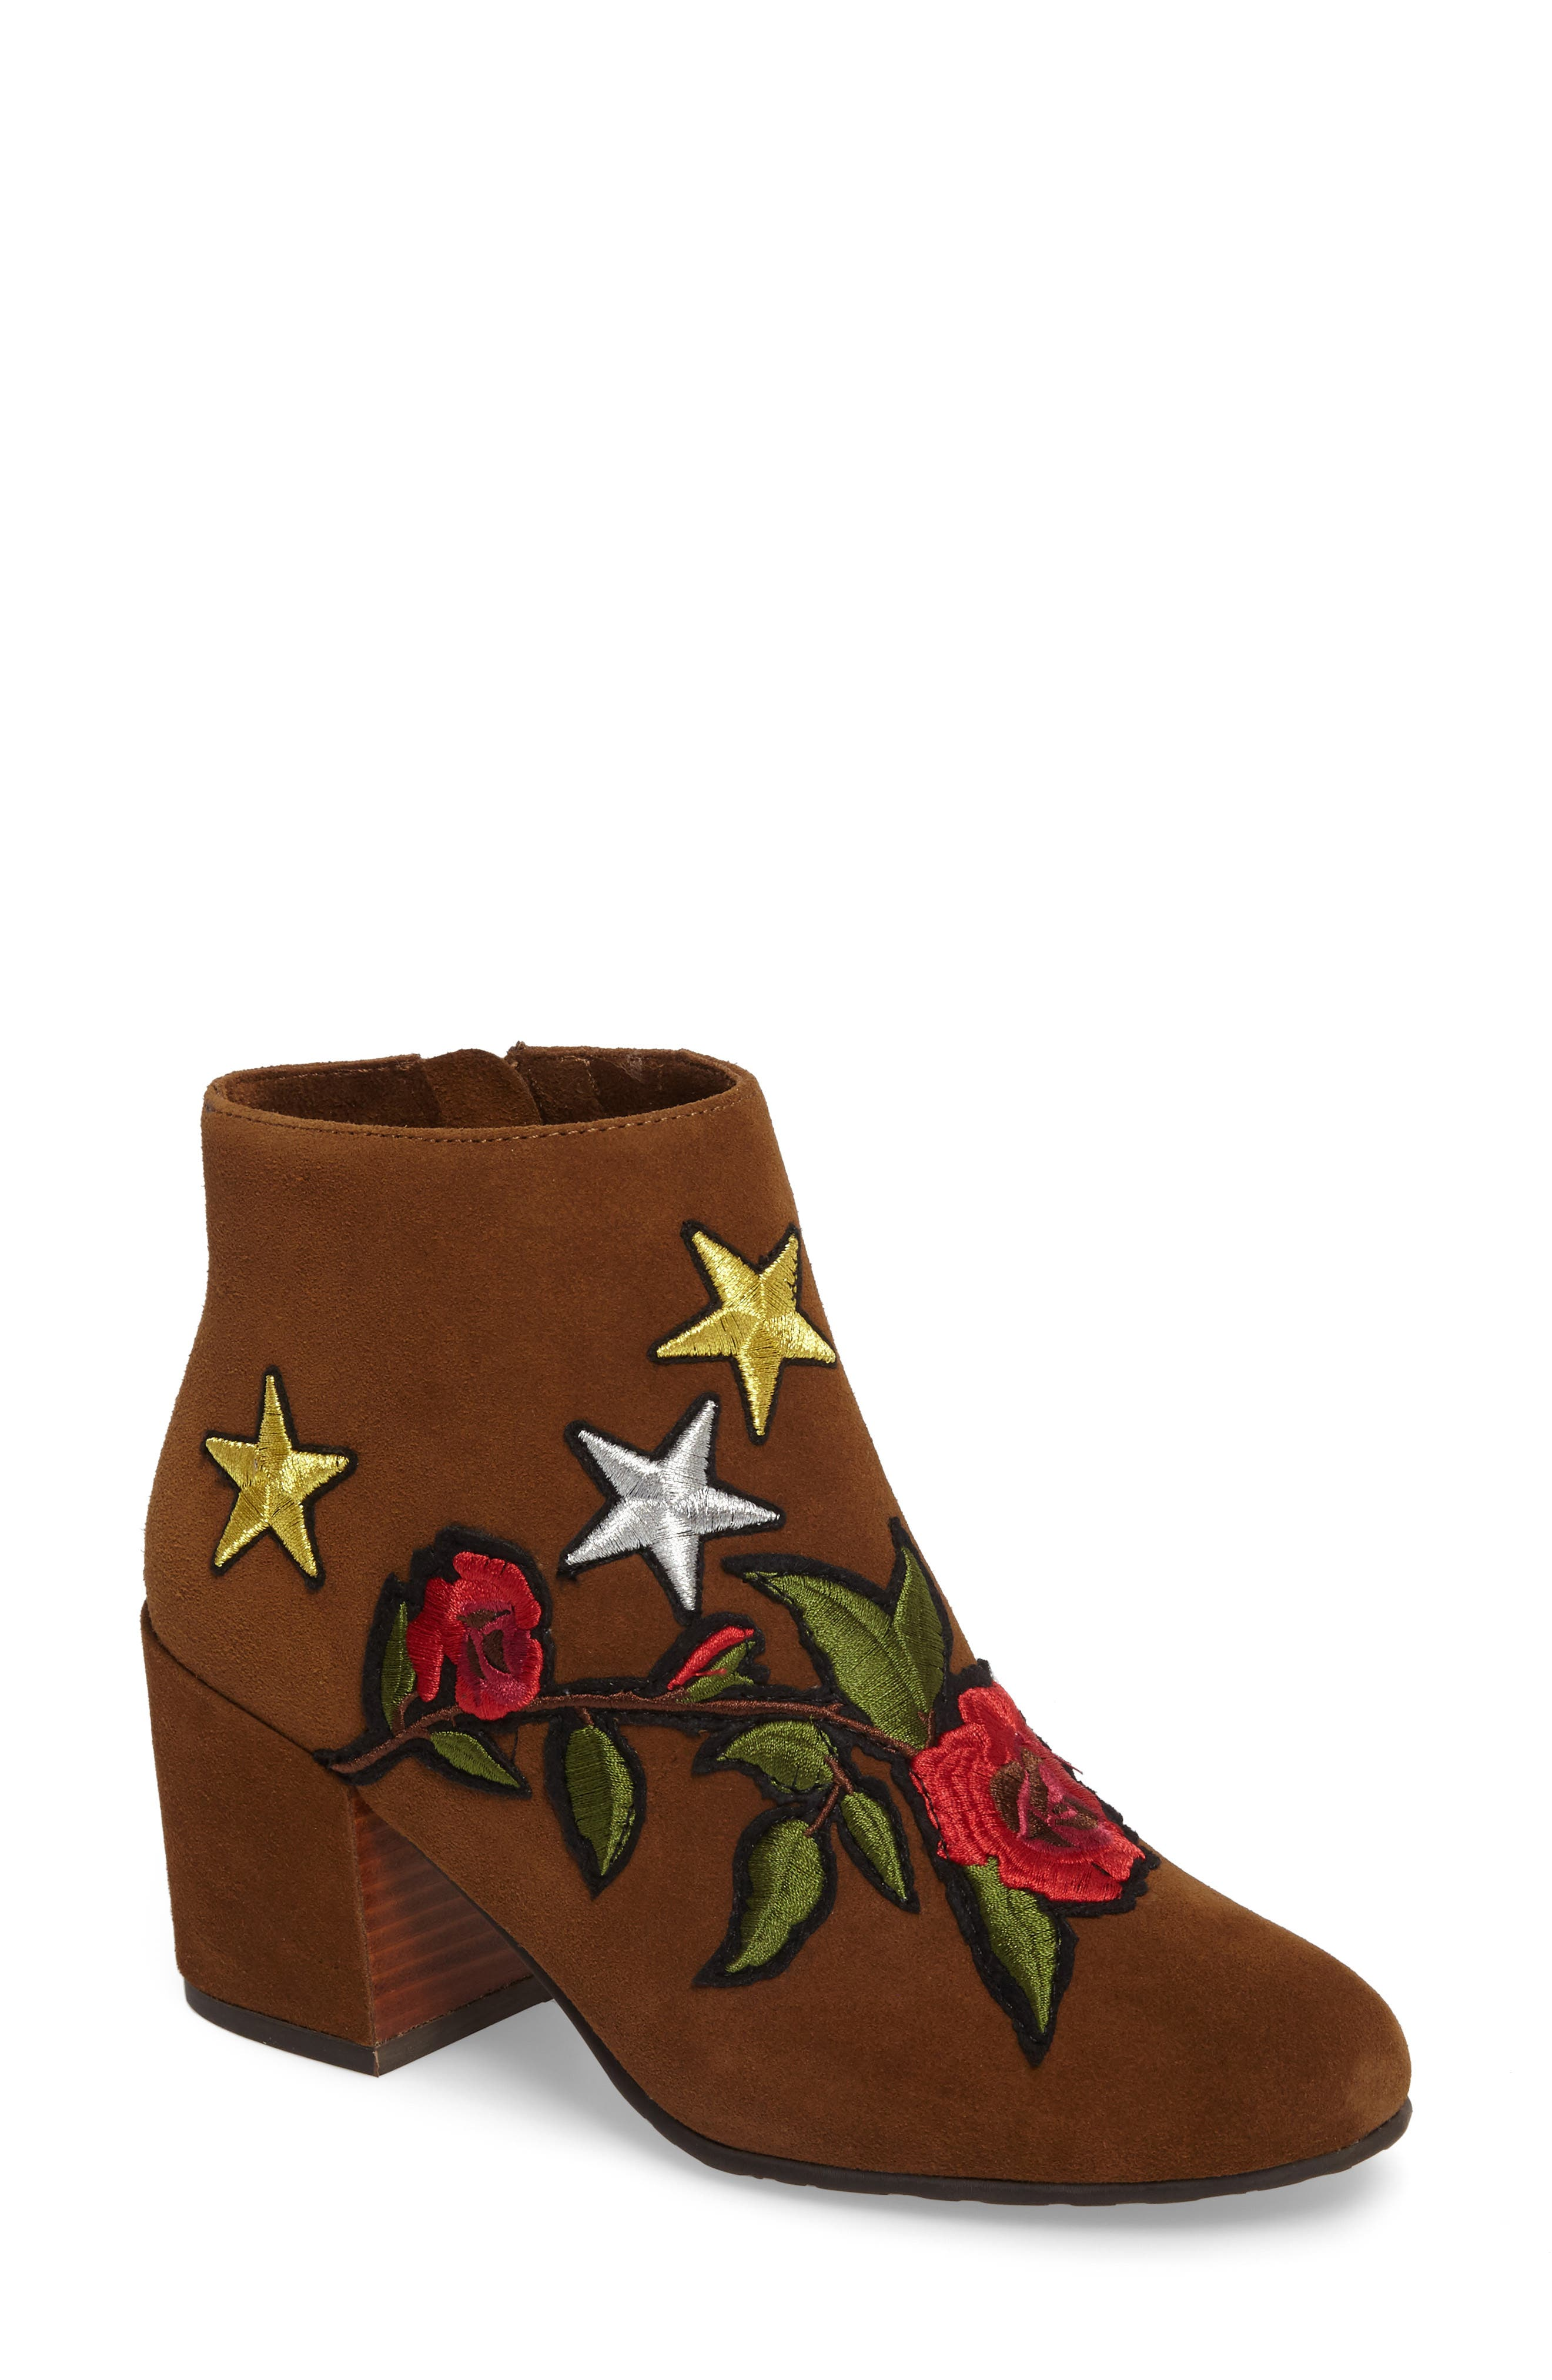 GENTLE SOULS BY KENNETH COLE Blaise Patches Bootie, Main, color, WALNUT SUEDE